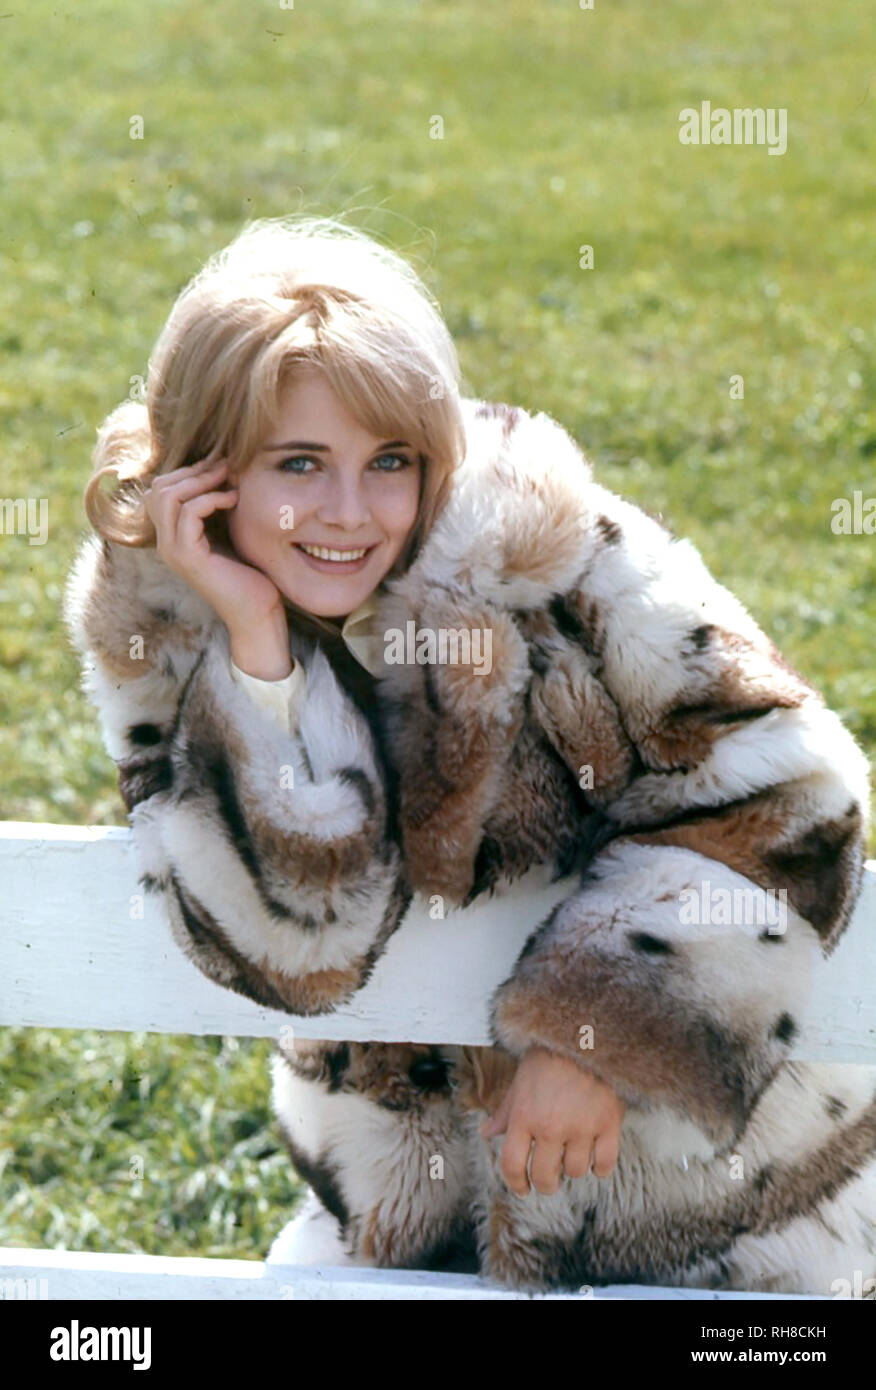 SUE LYON American film actress about 1967 - Stock Image